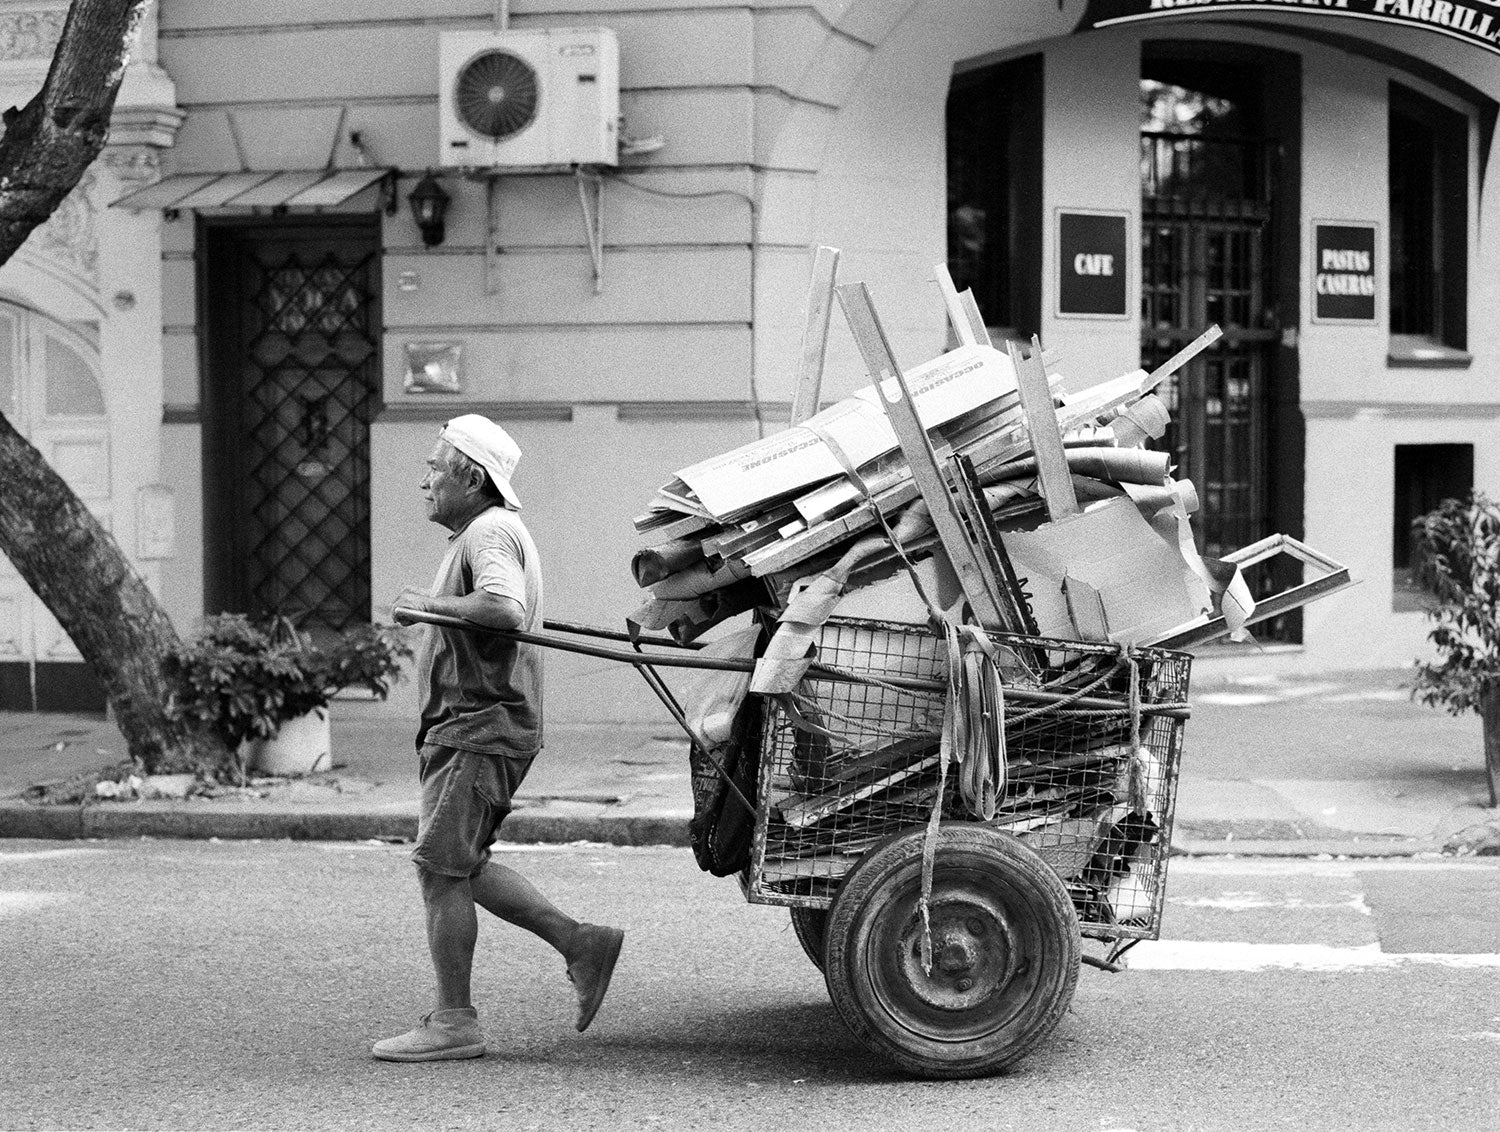 Recycle Man, Buenos Aires Black and White Street Photography